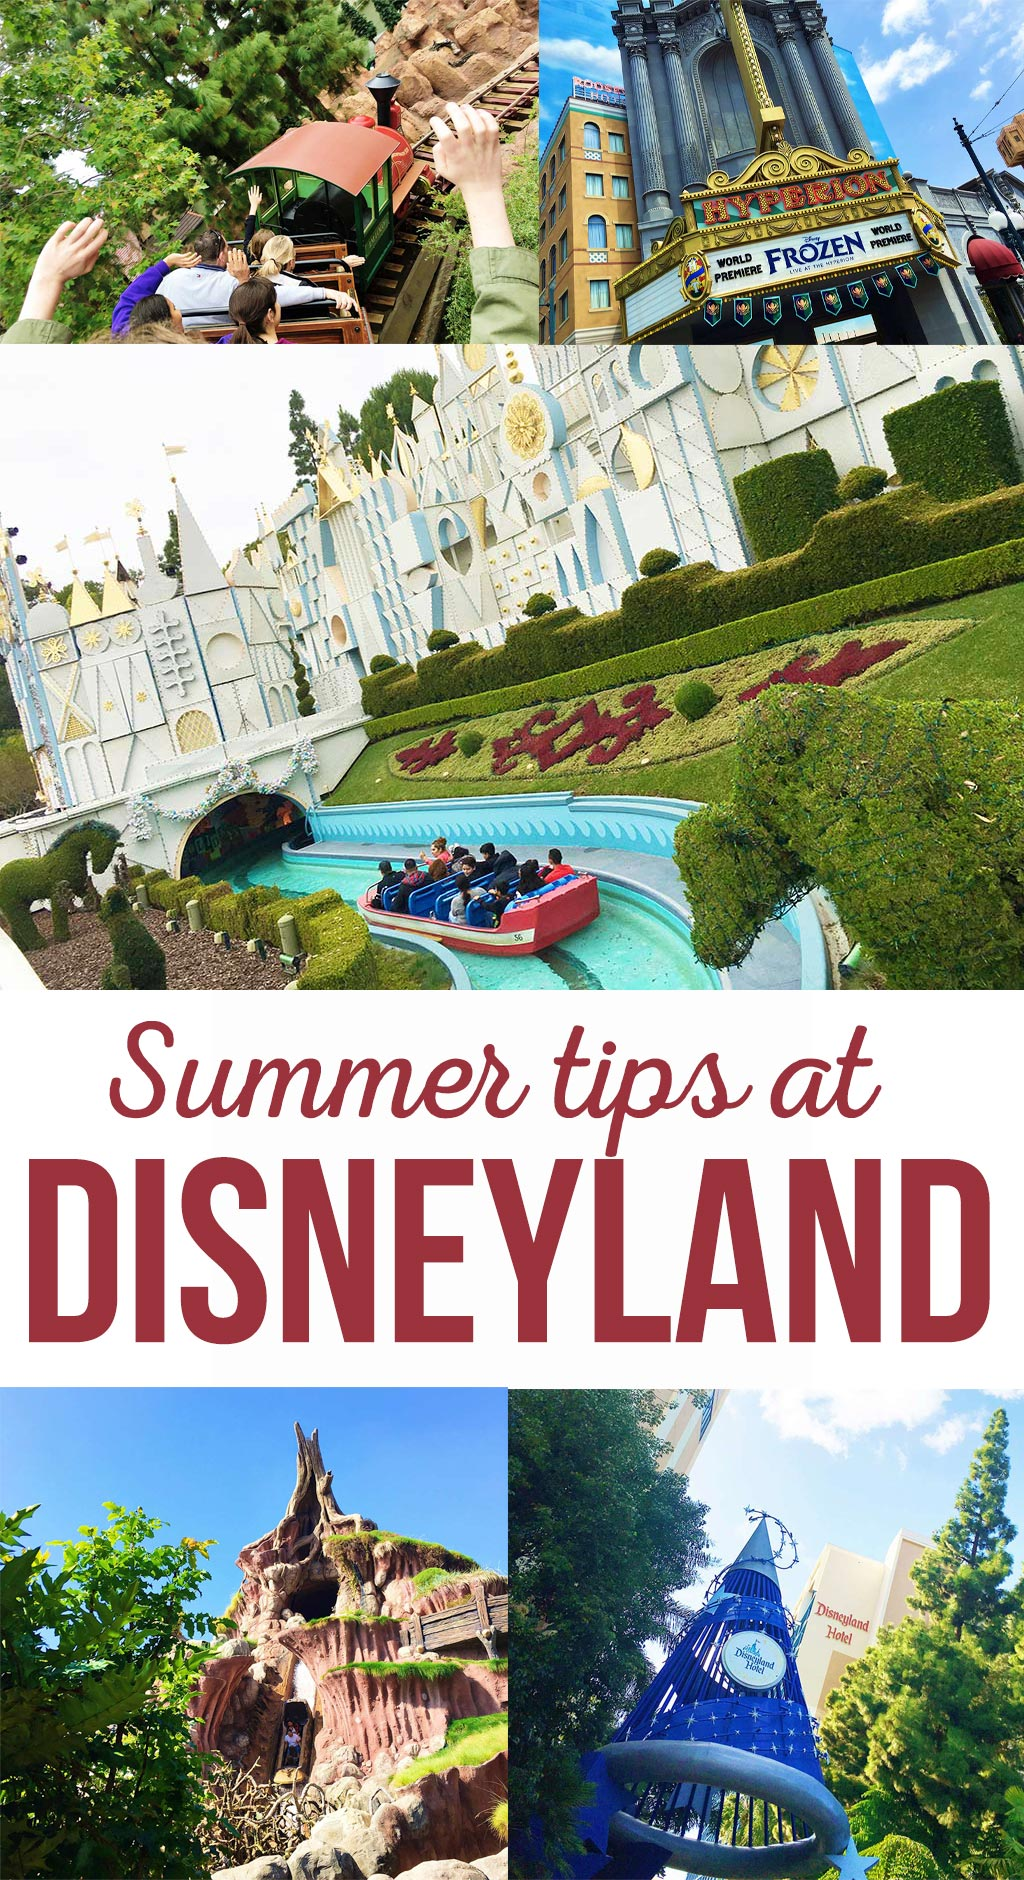 Find out how to beat the heat at Disneyland during summer. Learn about the best rides, treats and tricks for staying cool on a hot day.